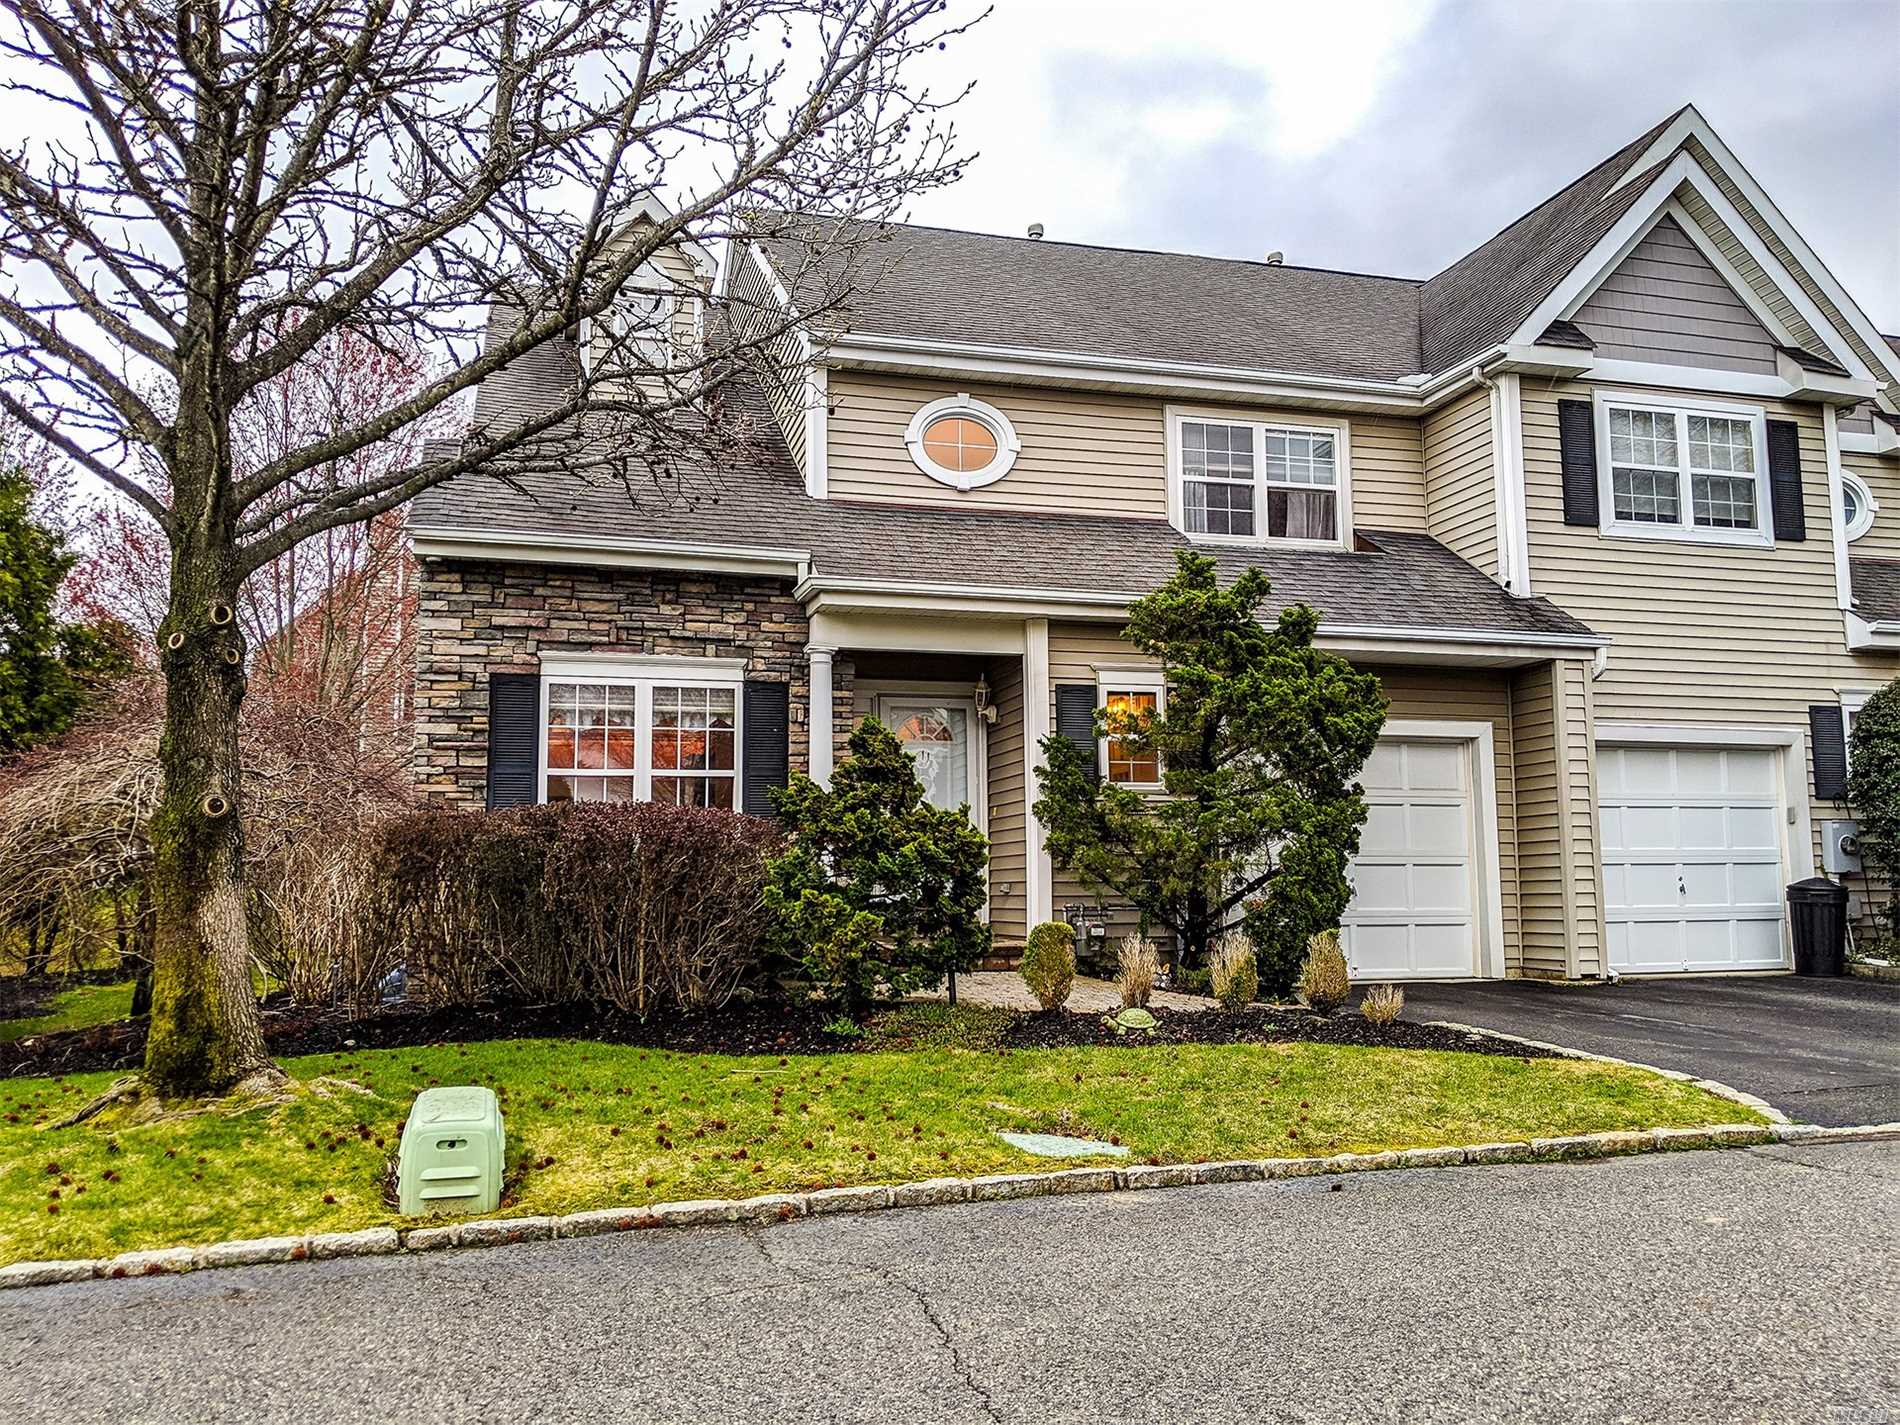 Fall in Love with this Rare find in the Windcrest Community in Smithtown. This 3 Bedroom 2.5 Bath Concord Model is an End Unit that features a Master Bedroom w/ Full Bath En-Suite on the first floor, a Large Kitchen w/ Granite Countertops and Stainless Steel Appliances, Formal Dining, Large Living Room/Den w/ Fireplace, 2 Bedrooms & a Full Bath Upstairs w/ an Additional Bonus Room which can also be used as a Bedroom. Additionally it has a Full Basement, 1 Car Attached Garage, & Outdoor Patio!